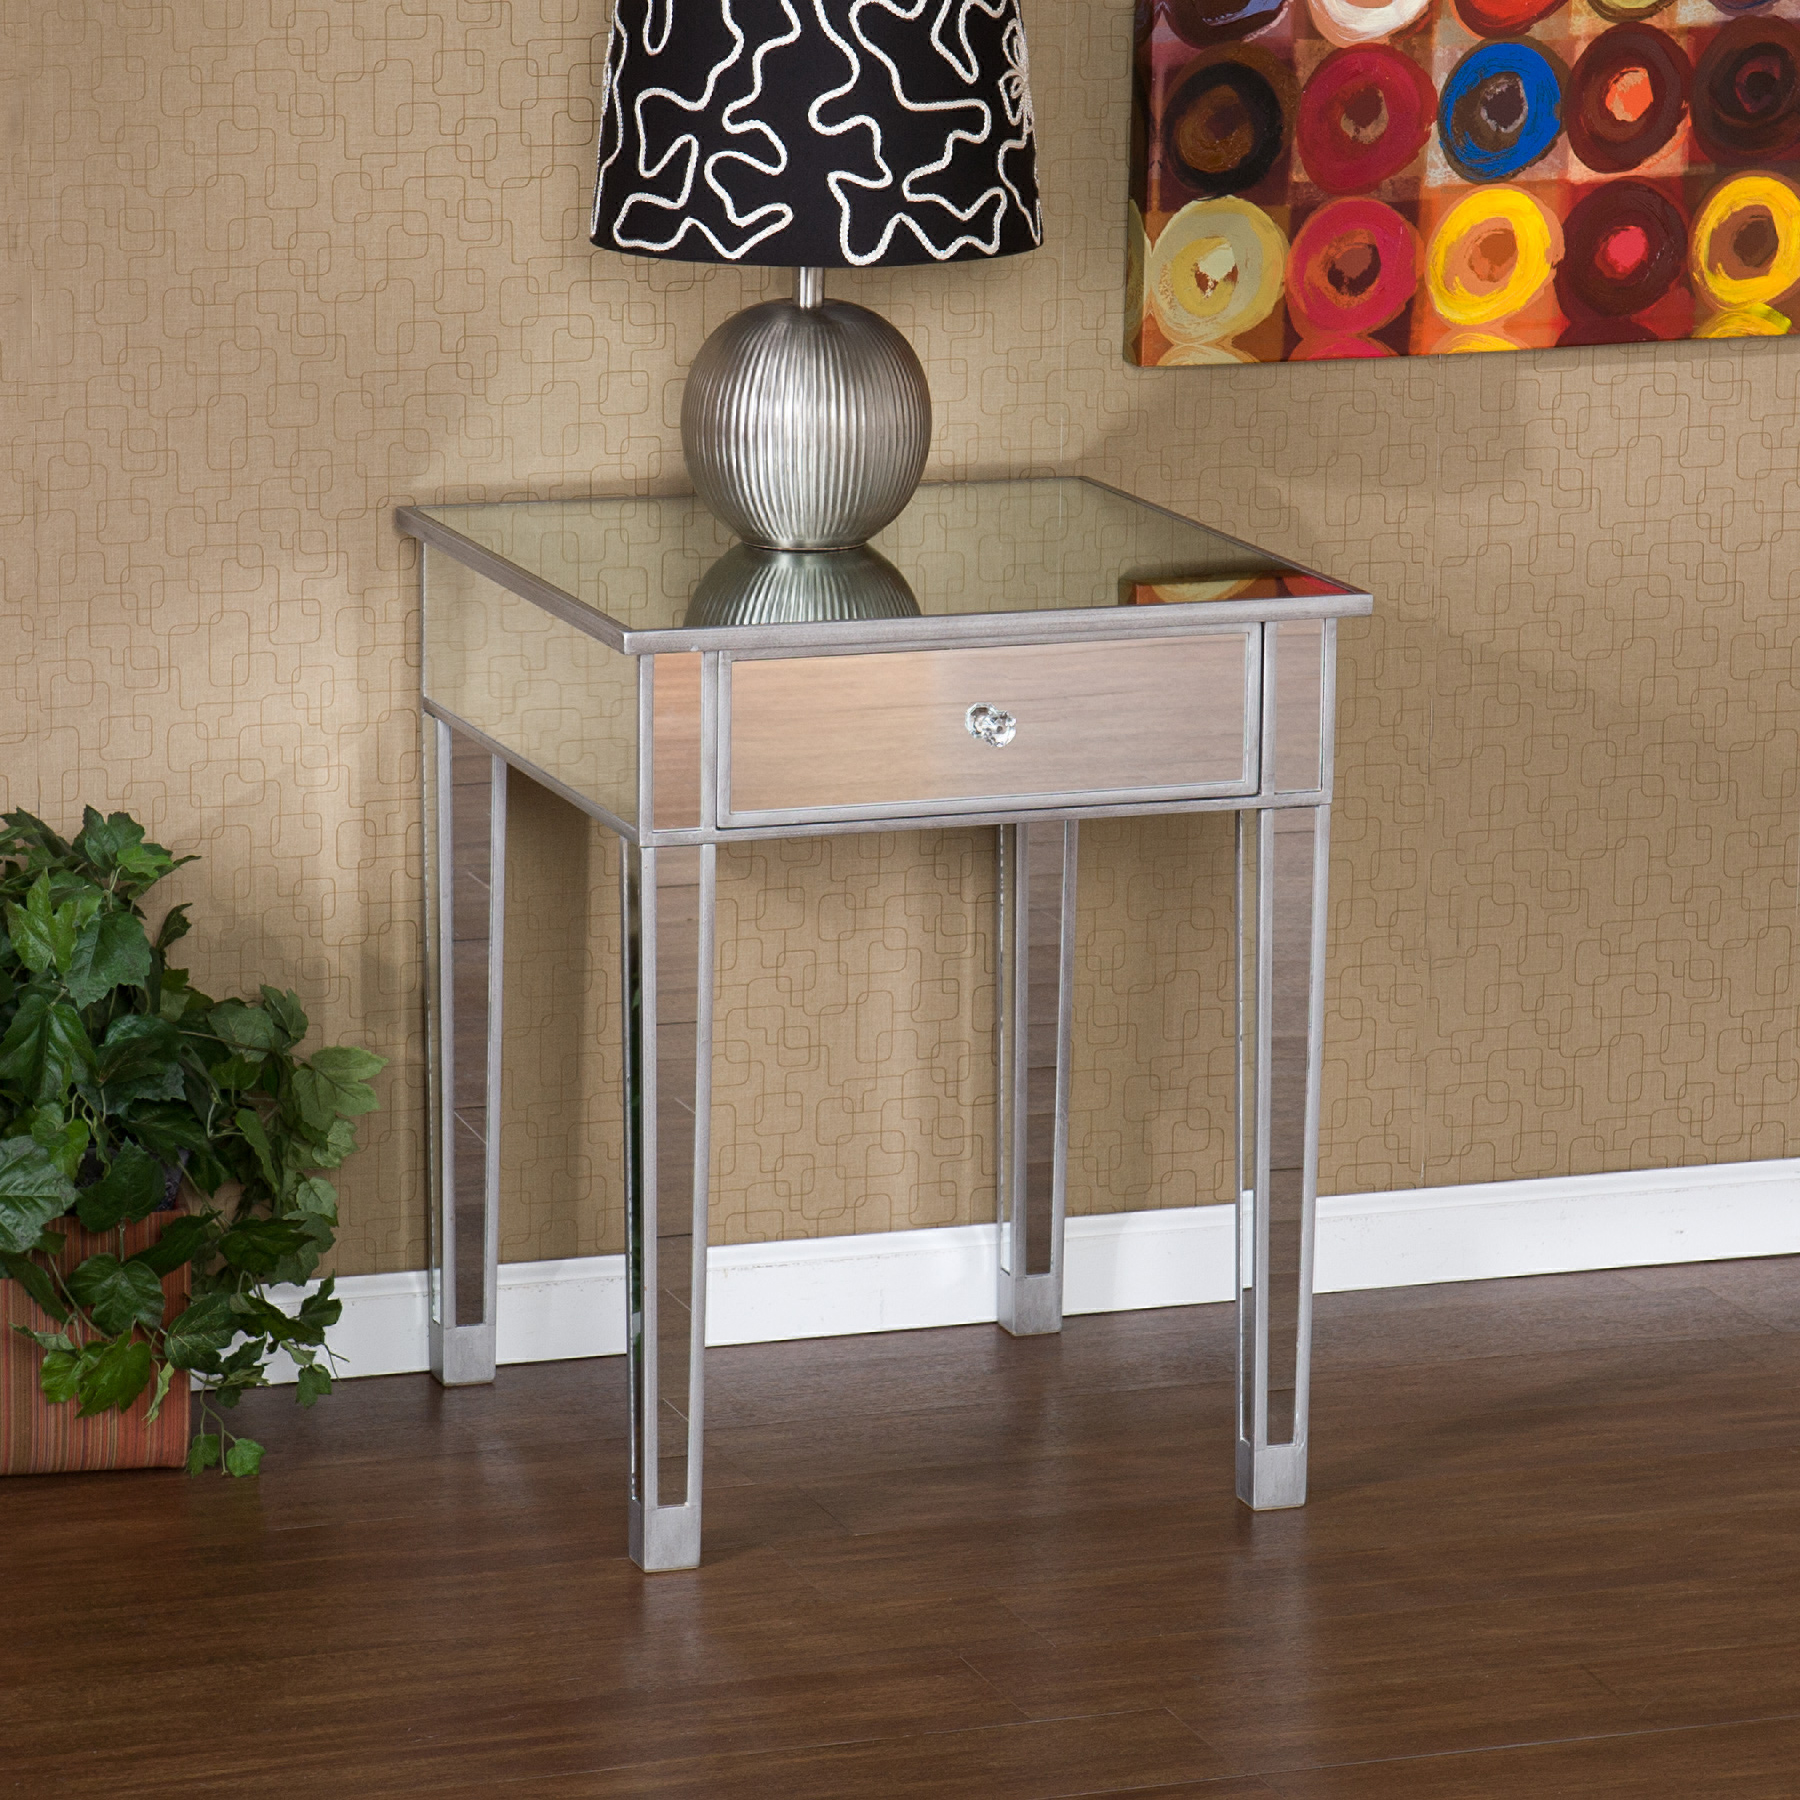 mirage mirrored accent table threshold with drawer coffee nest tables underneath ashley end usb trunk dresser glass side set brass nesting coleman queen airbed cot lack bedside